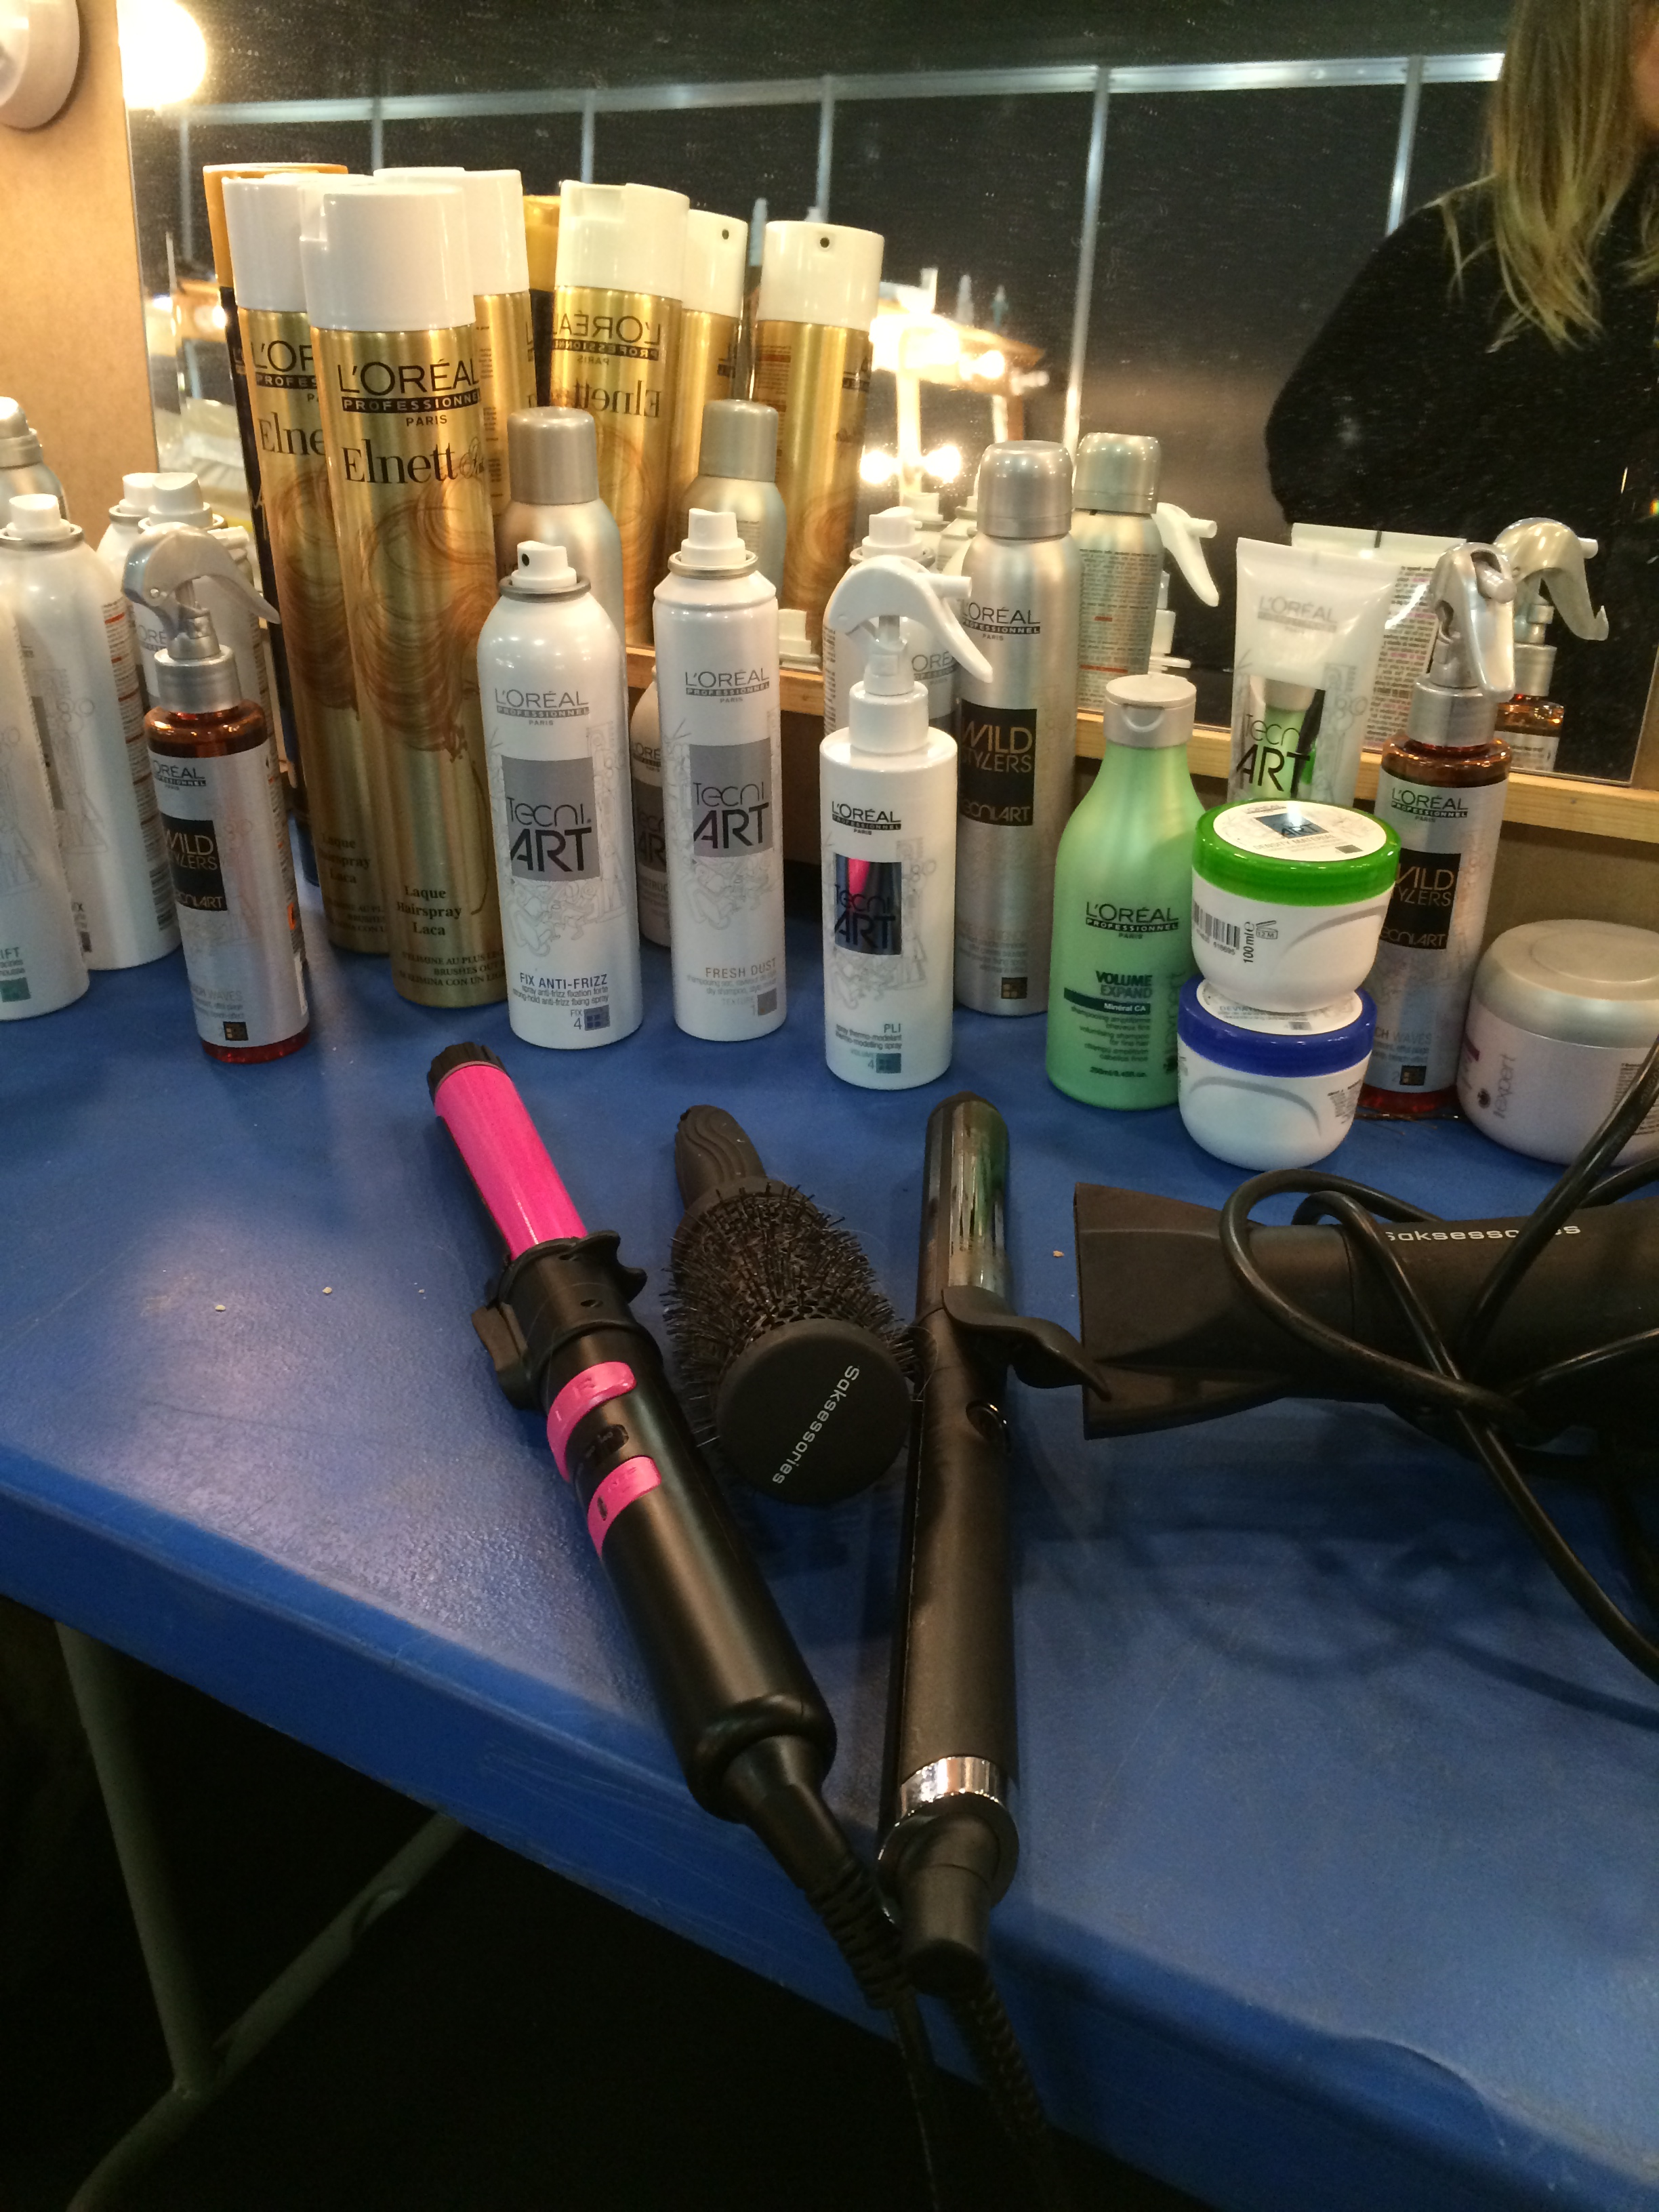 Backstage hair products